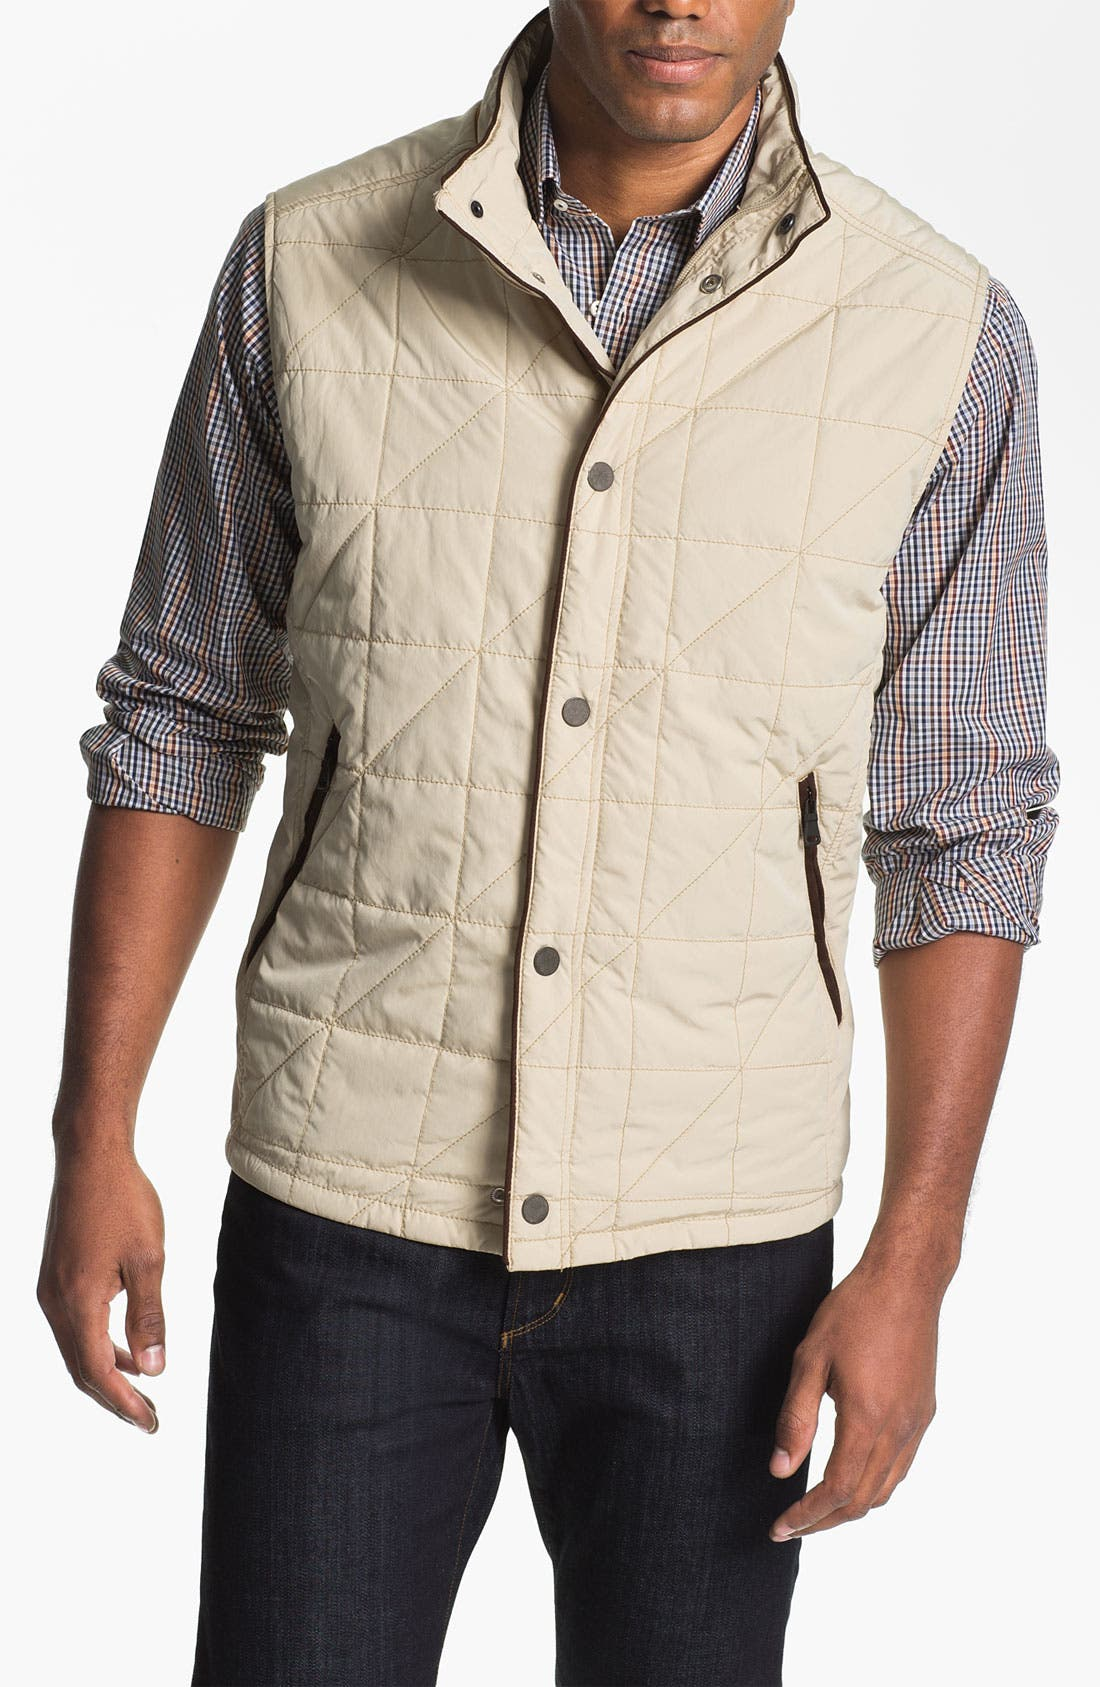 Alternate Image 1 Selected - Tommy Bahama 'Vestination' Quilted Vest